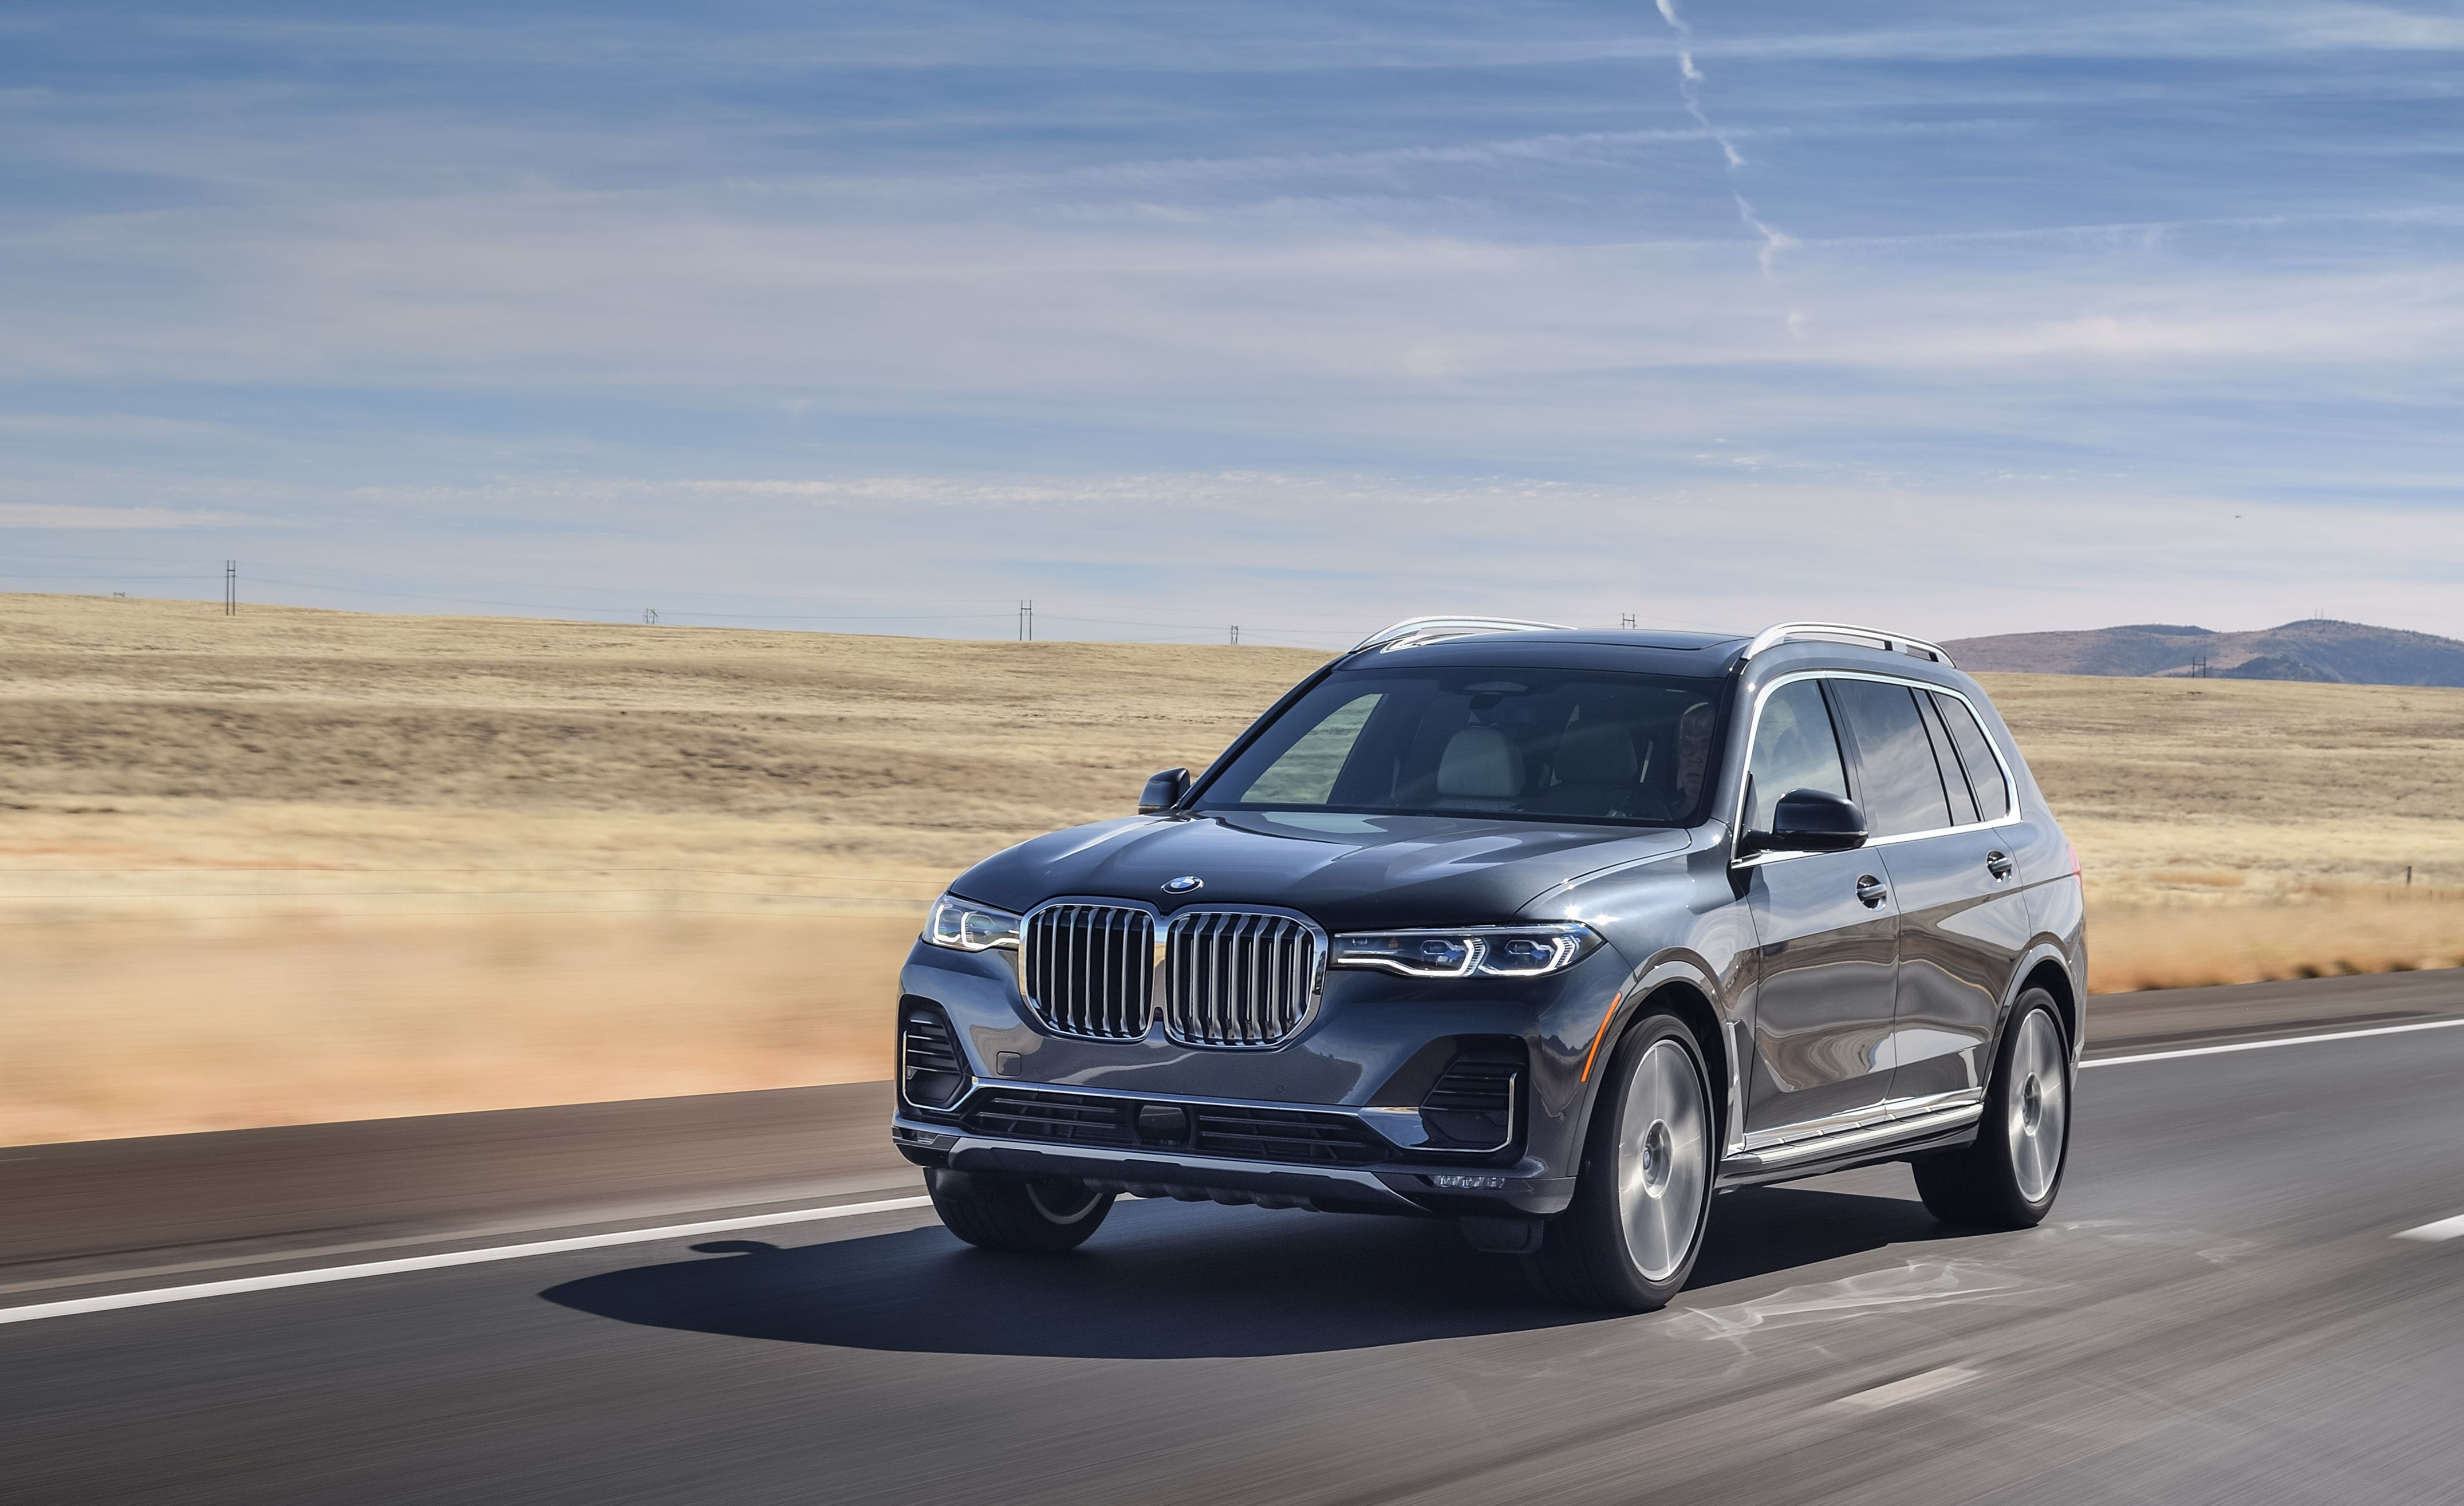 2019 BMW X7 - BMW's Largest SUV Is Extremely Quiet Inside